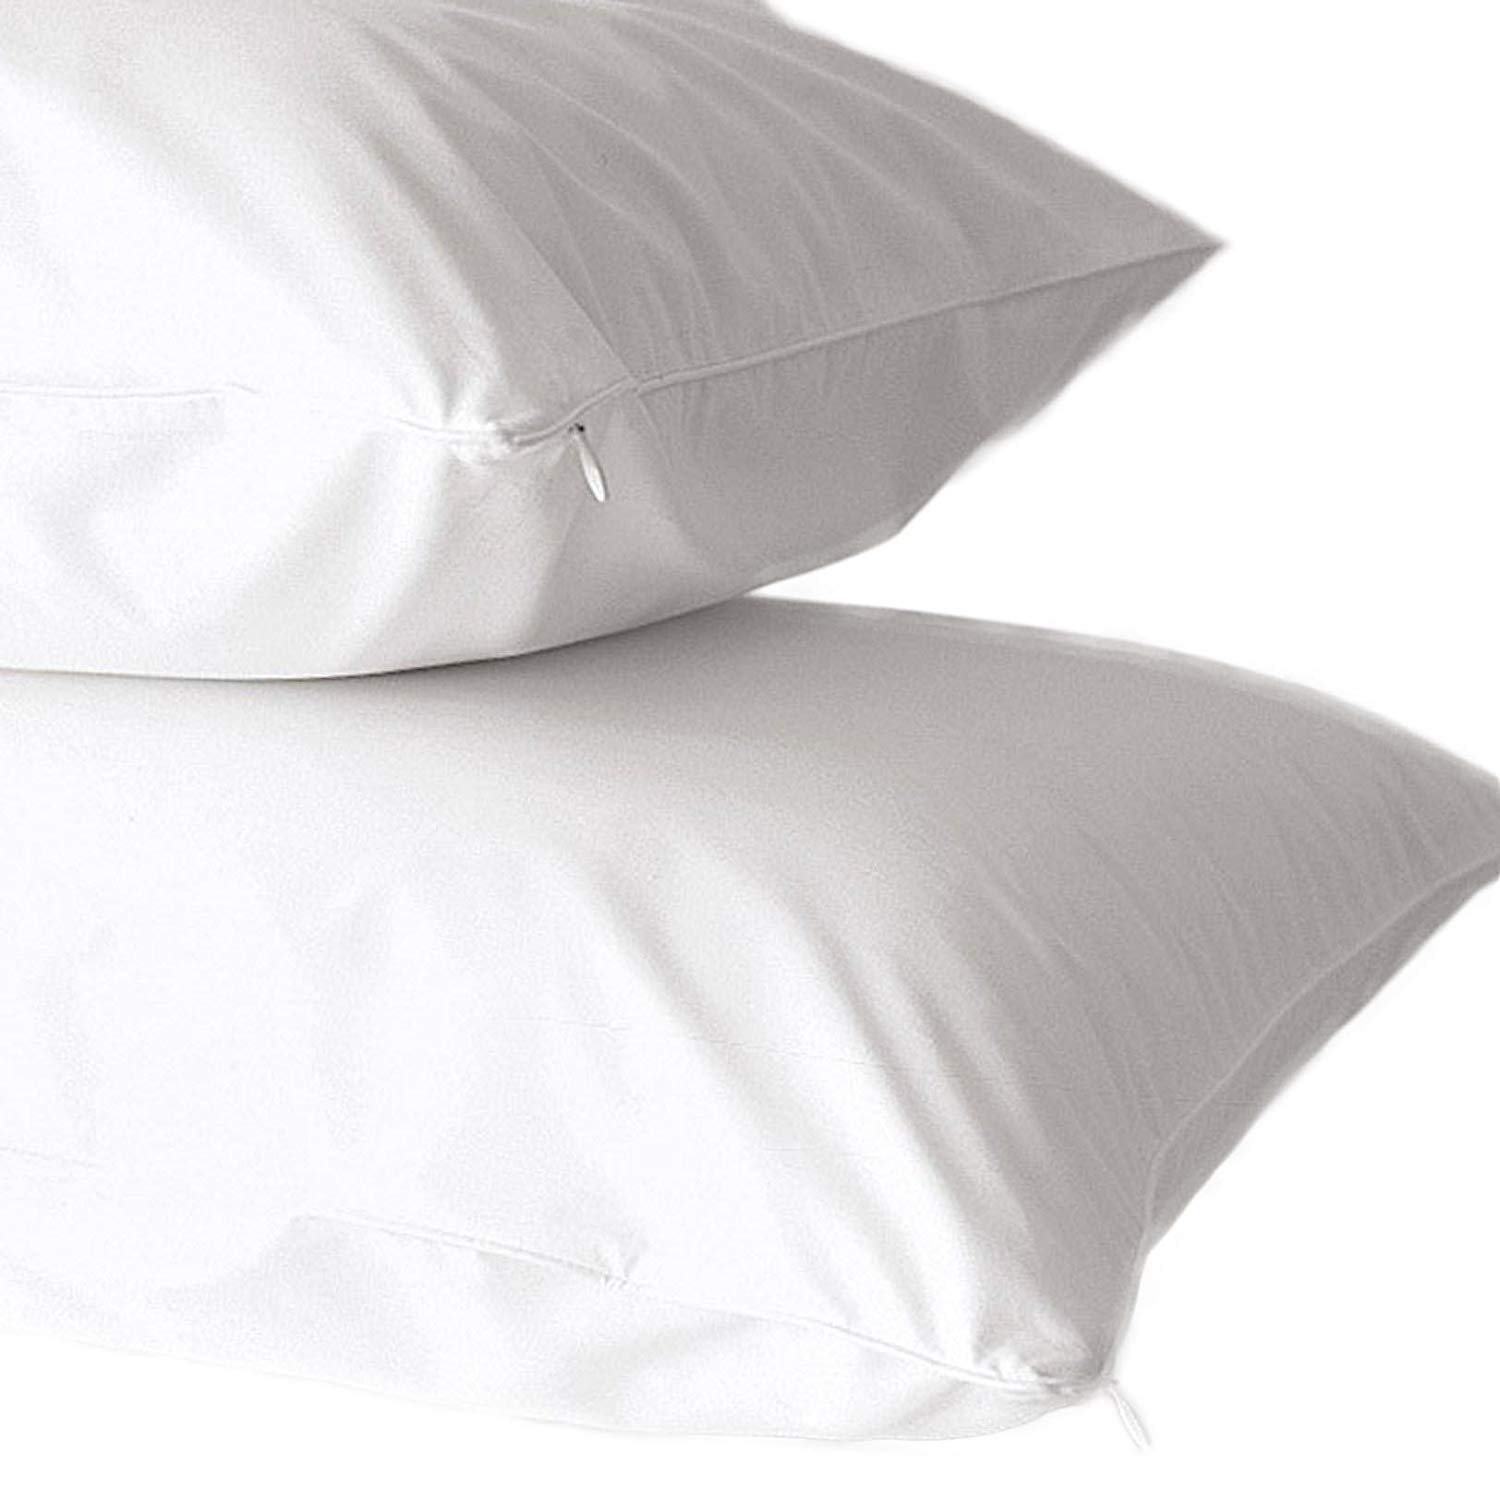 Tamara Collection Brand. King Great Bay Home 2-Pack Premium Allergy Pillow Protectors Dust Mite /& Bed Bug Resistant 500 Thread Count 100/% Cotton Zippered Pillow Covers